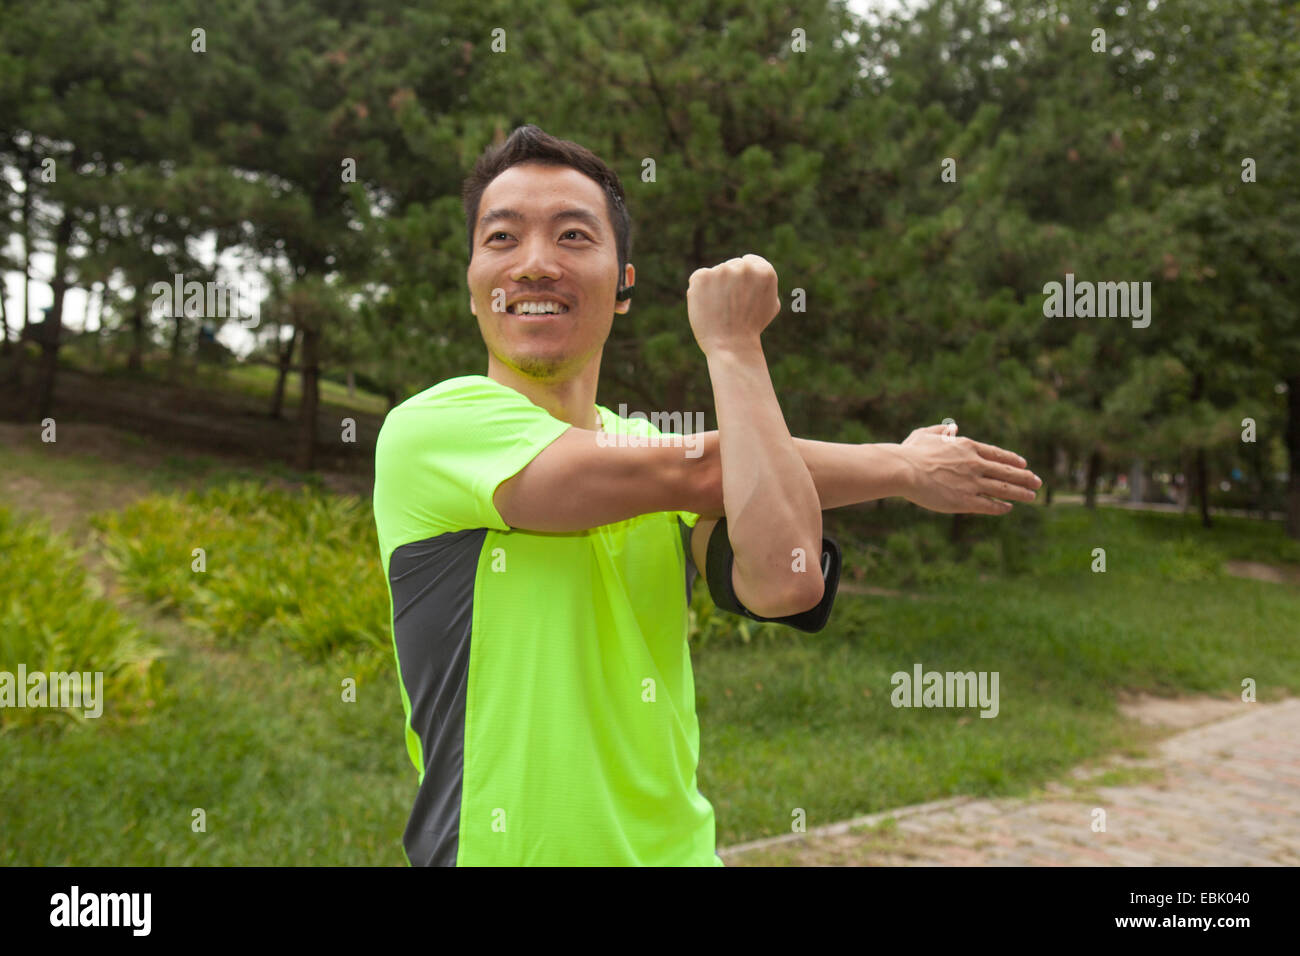 Young male runner stretching arms in park Photo Stock